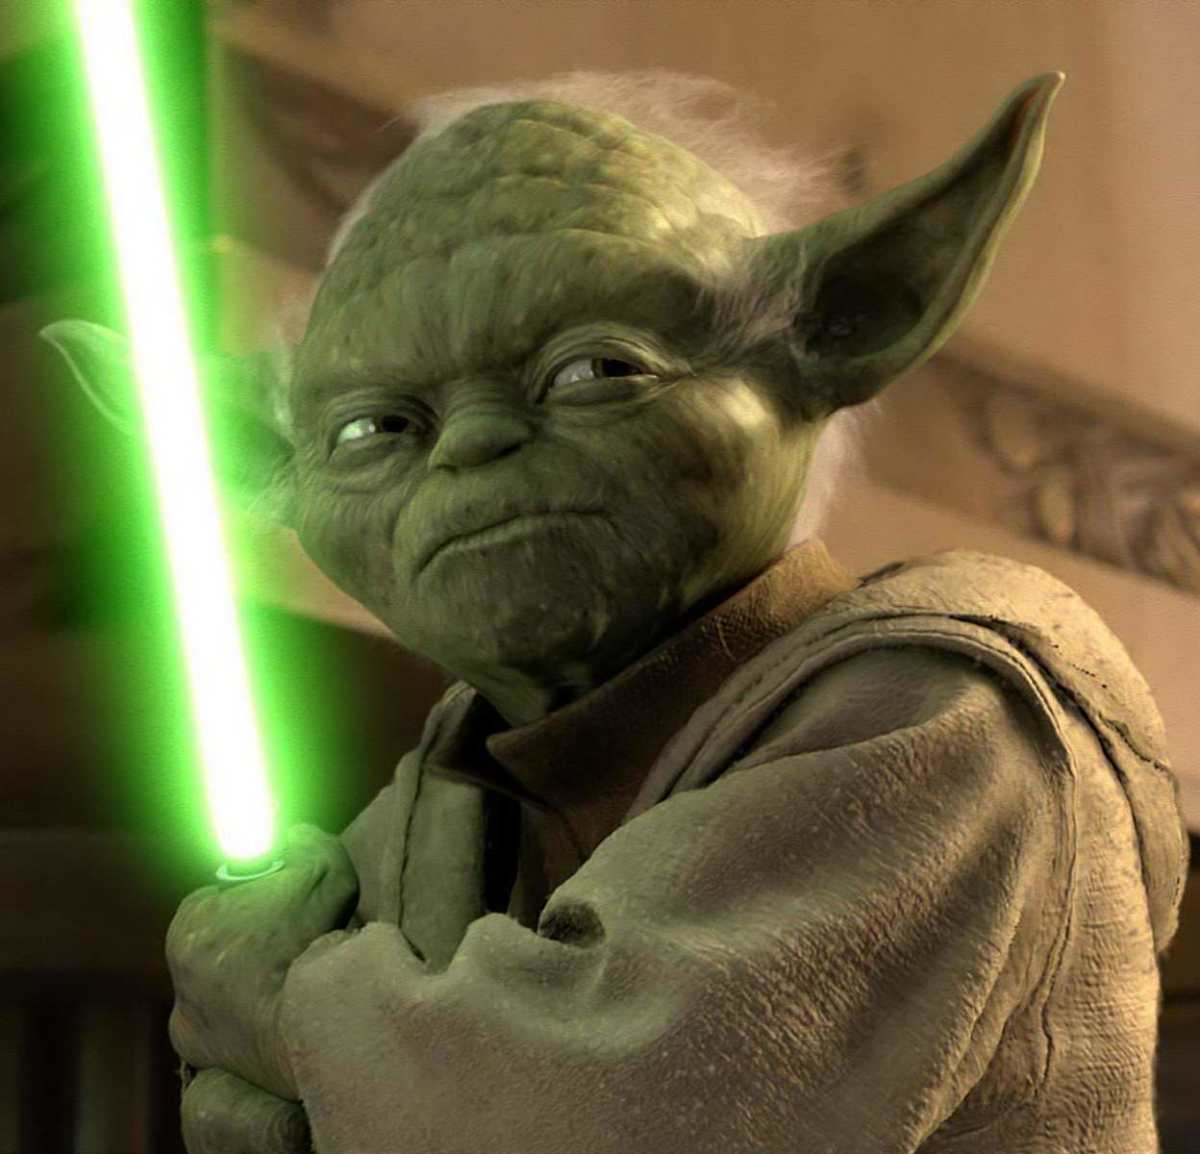 Even Yoda lights up - not an option with puppets of yore...